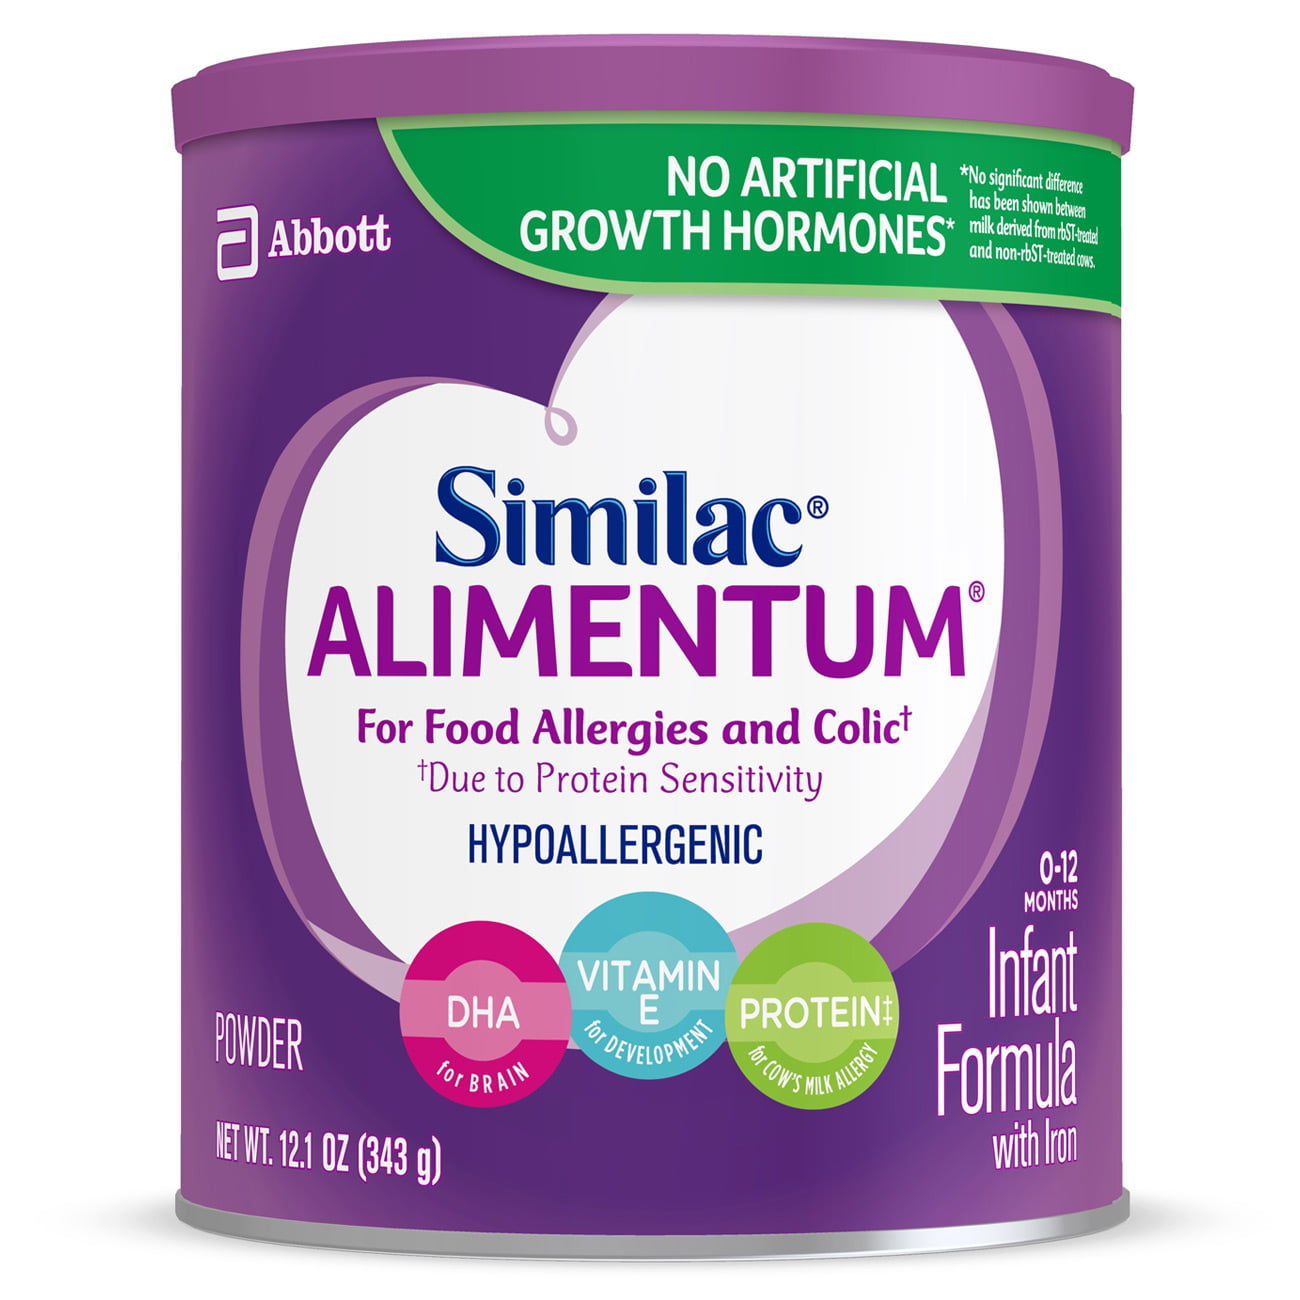 Similac Alimentum Hypoallergenic (6 Pack) for Food Allergies and Colic, Baby Formula, Powder, 12.1 ounces by Similac